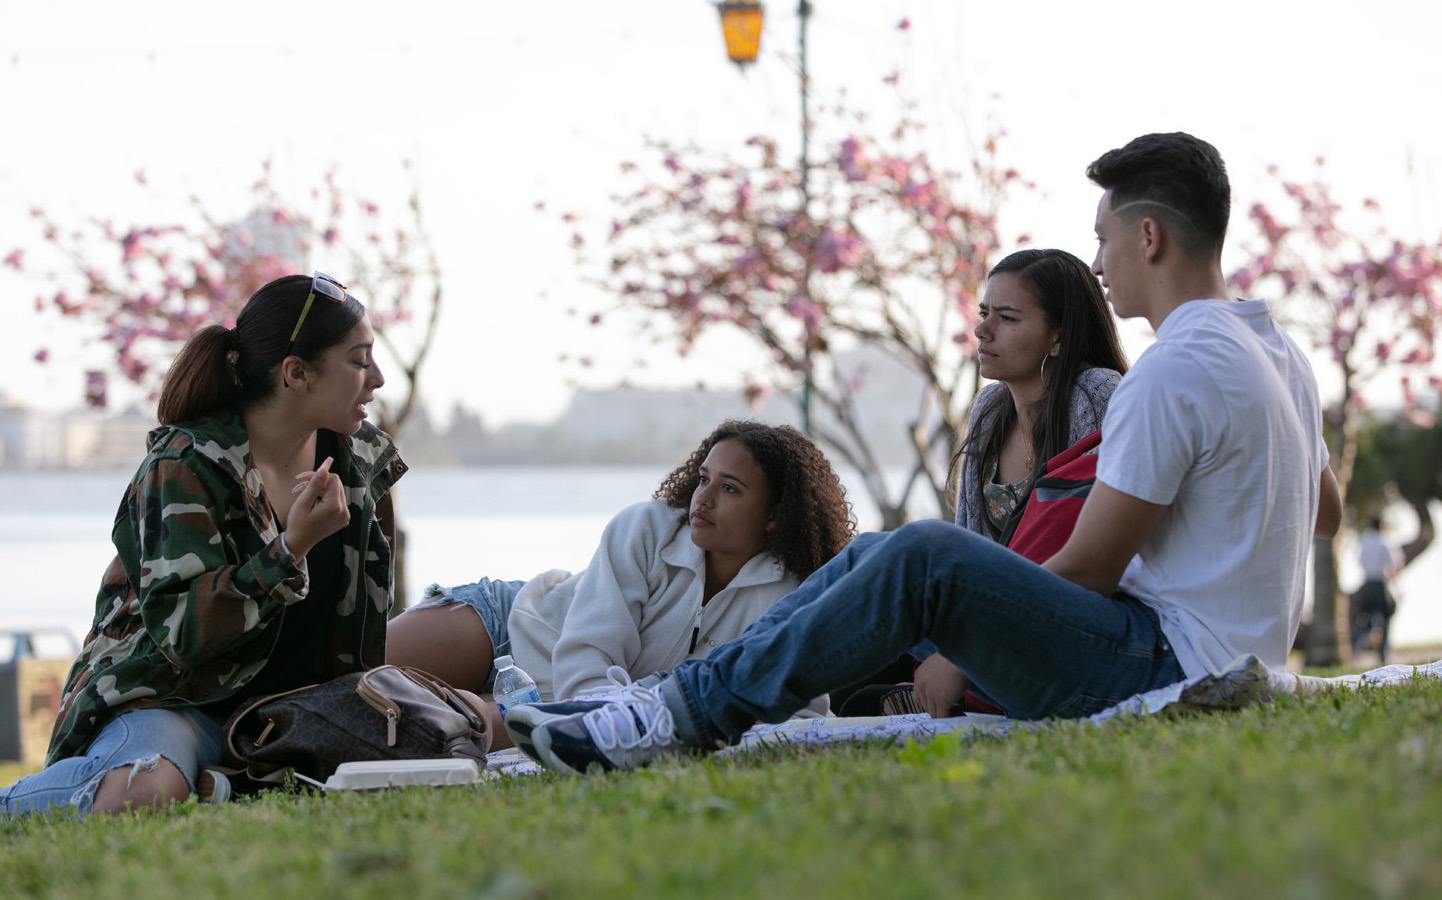 Holy Names University students talking together on lawn